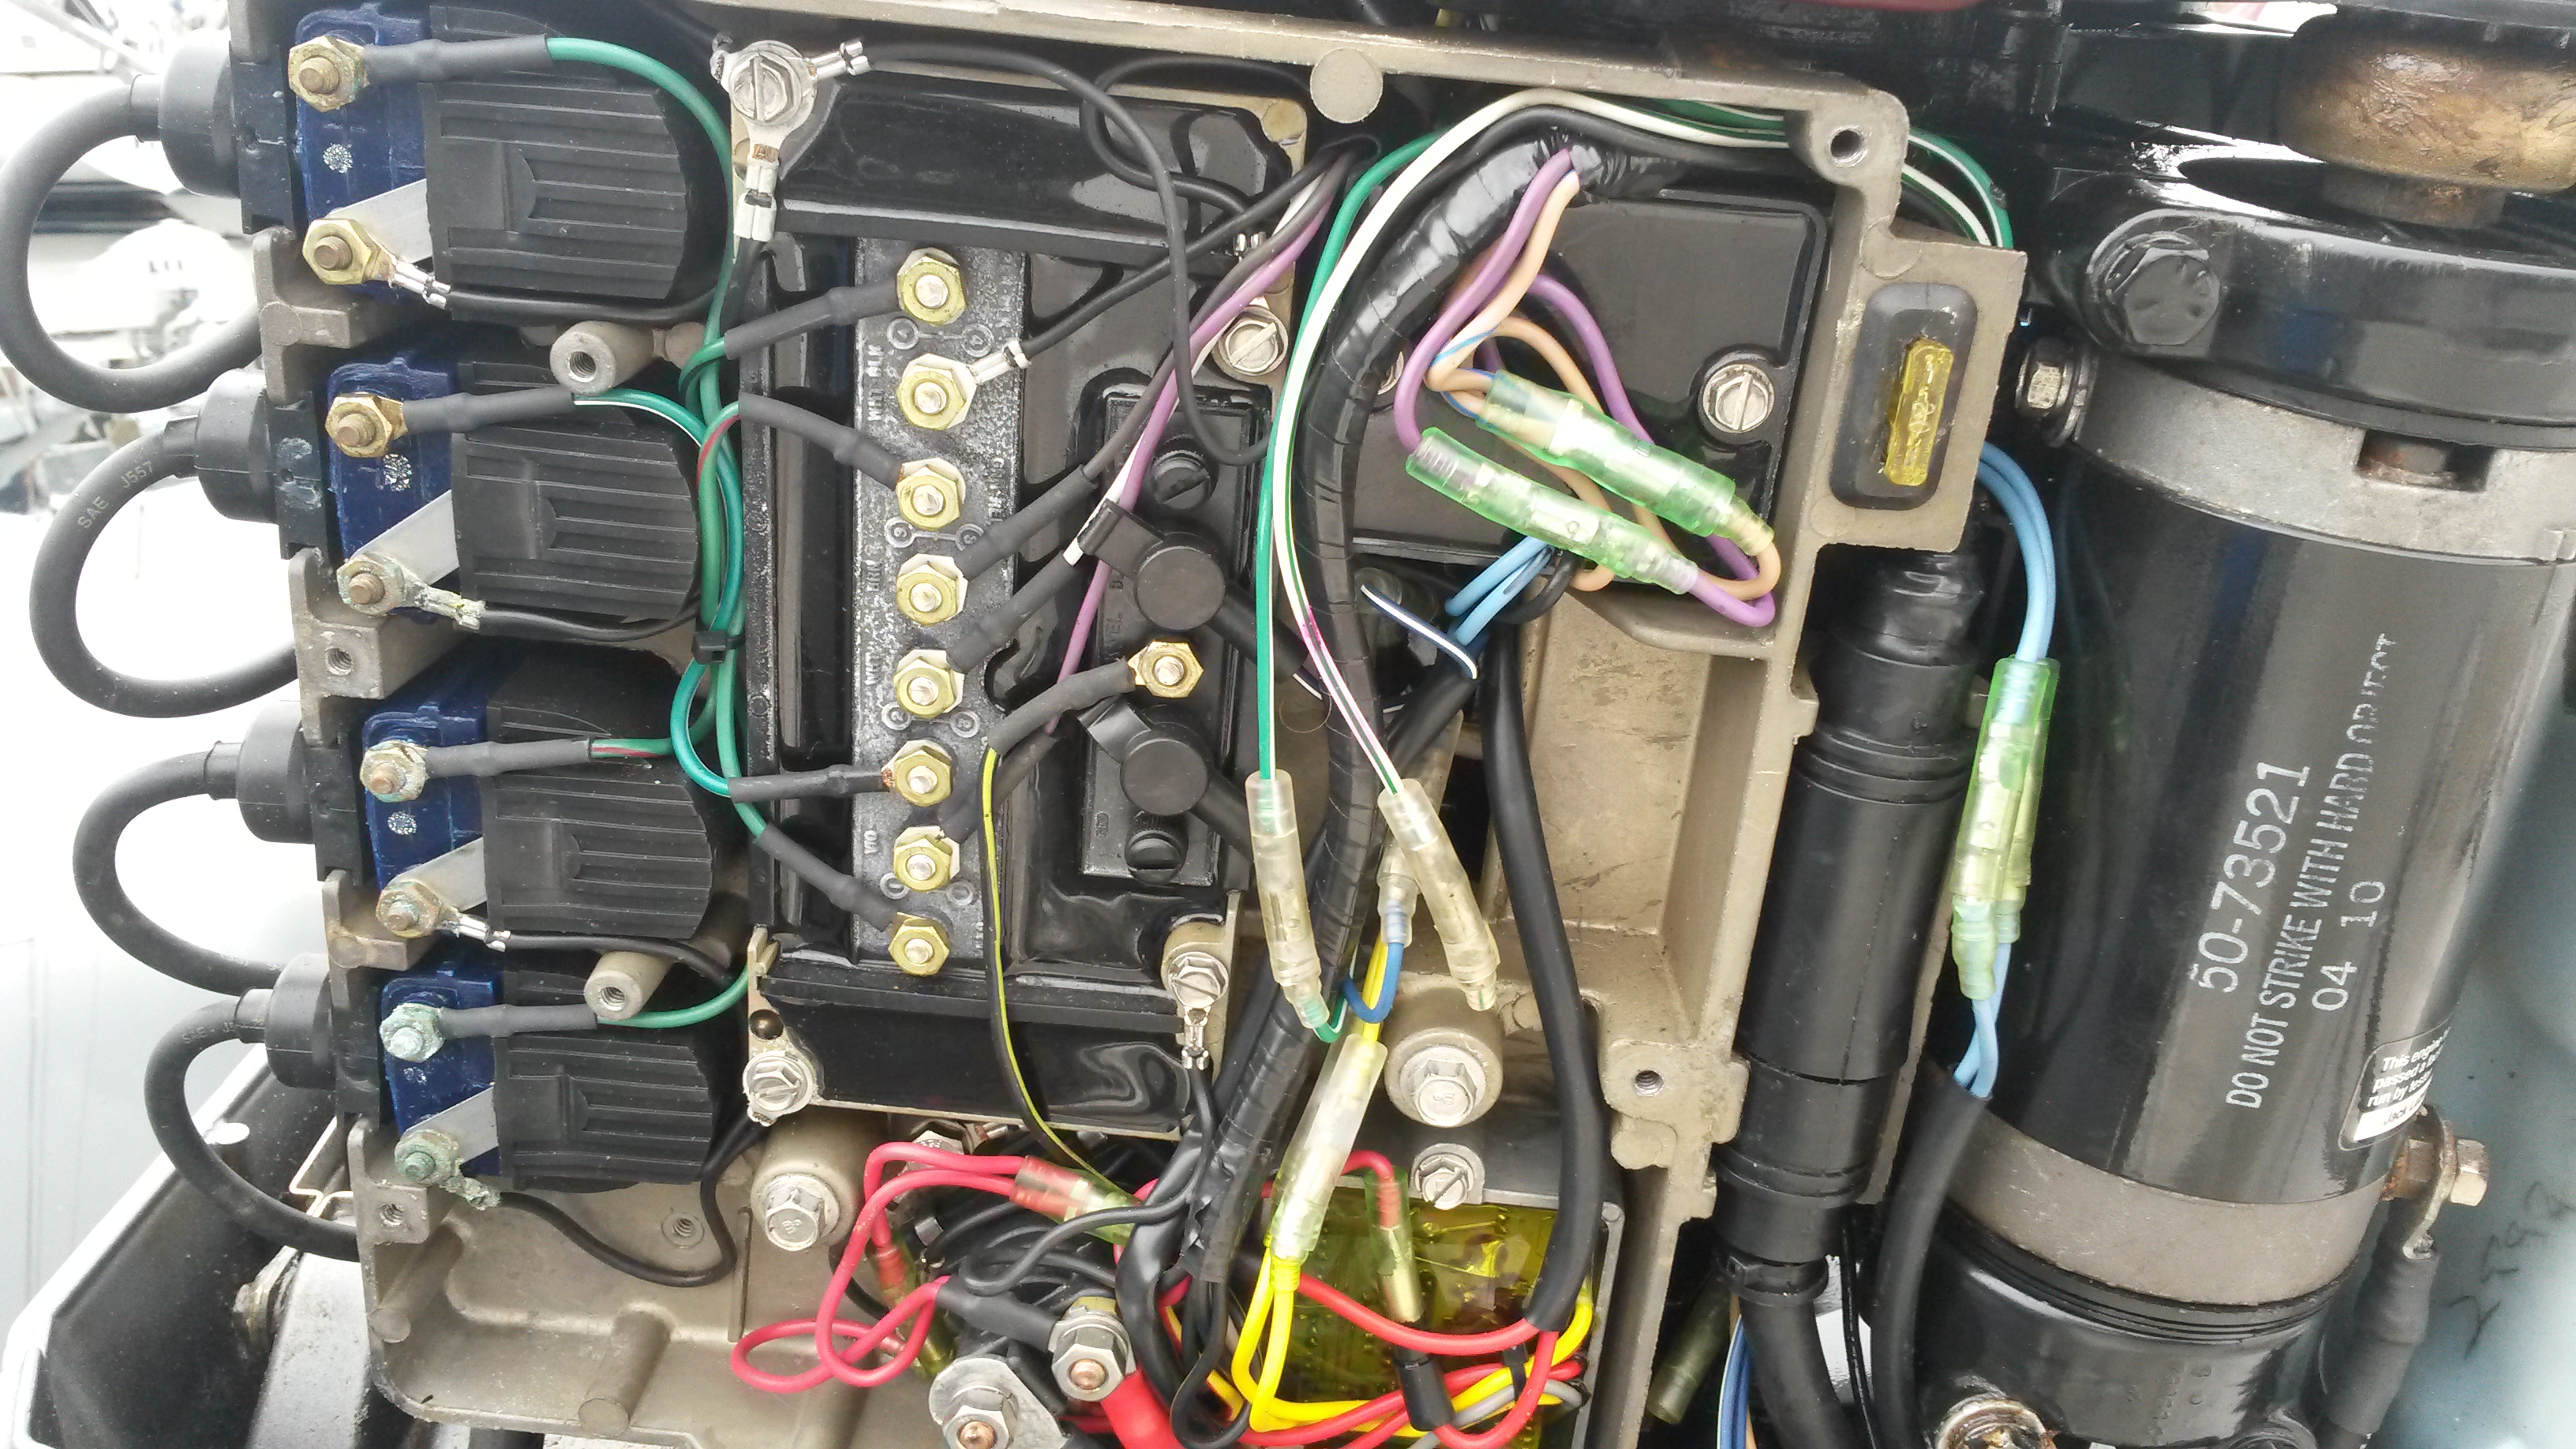 Evinrude Control Box And Cables